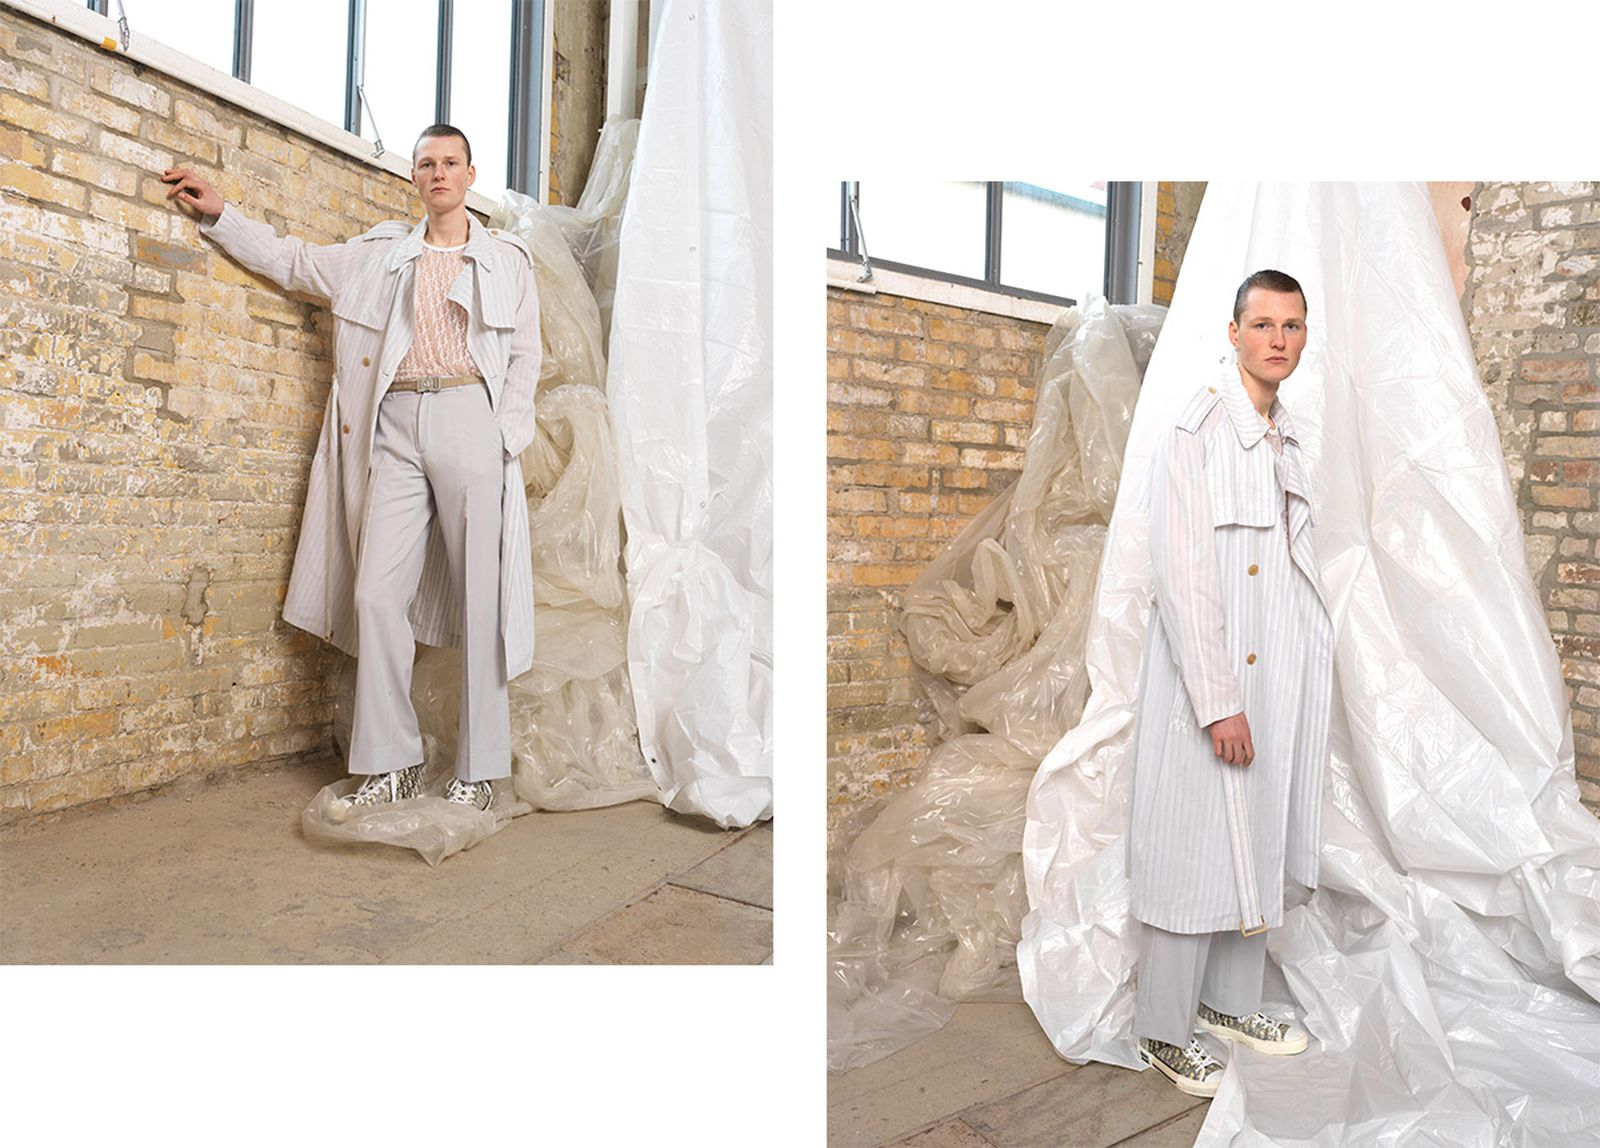 ss19 trends editorial Gucci Nike OFF-WHITE c/o Virgil Abloh